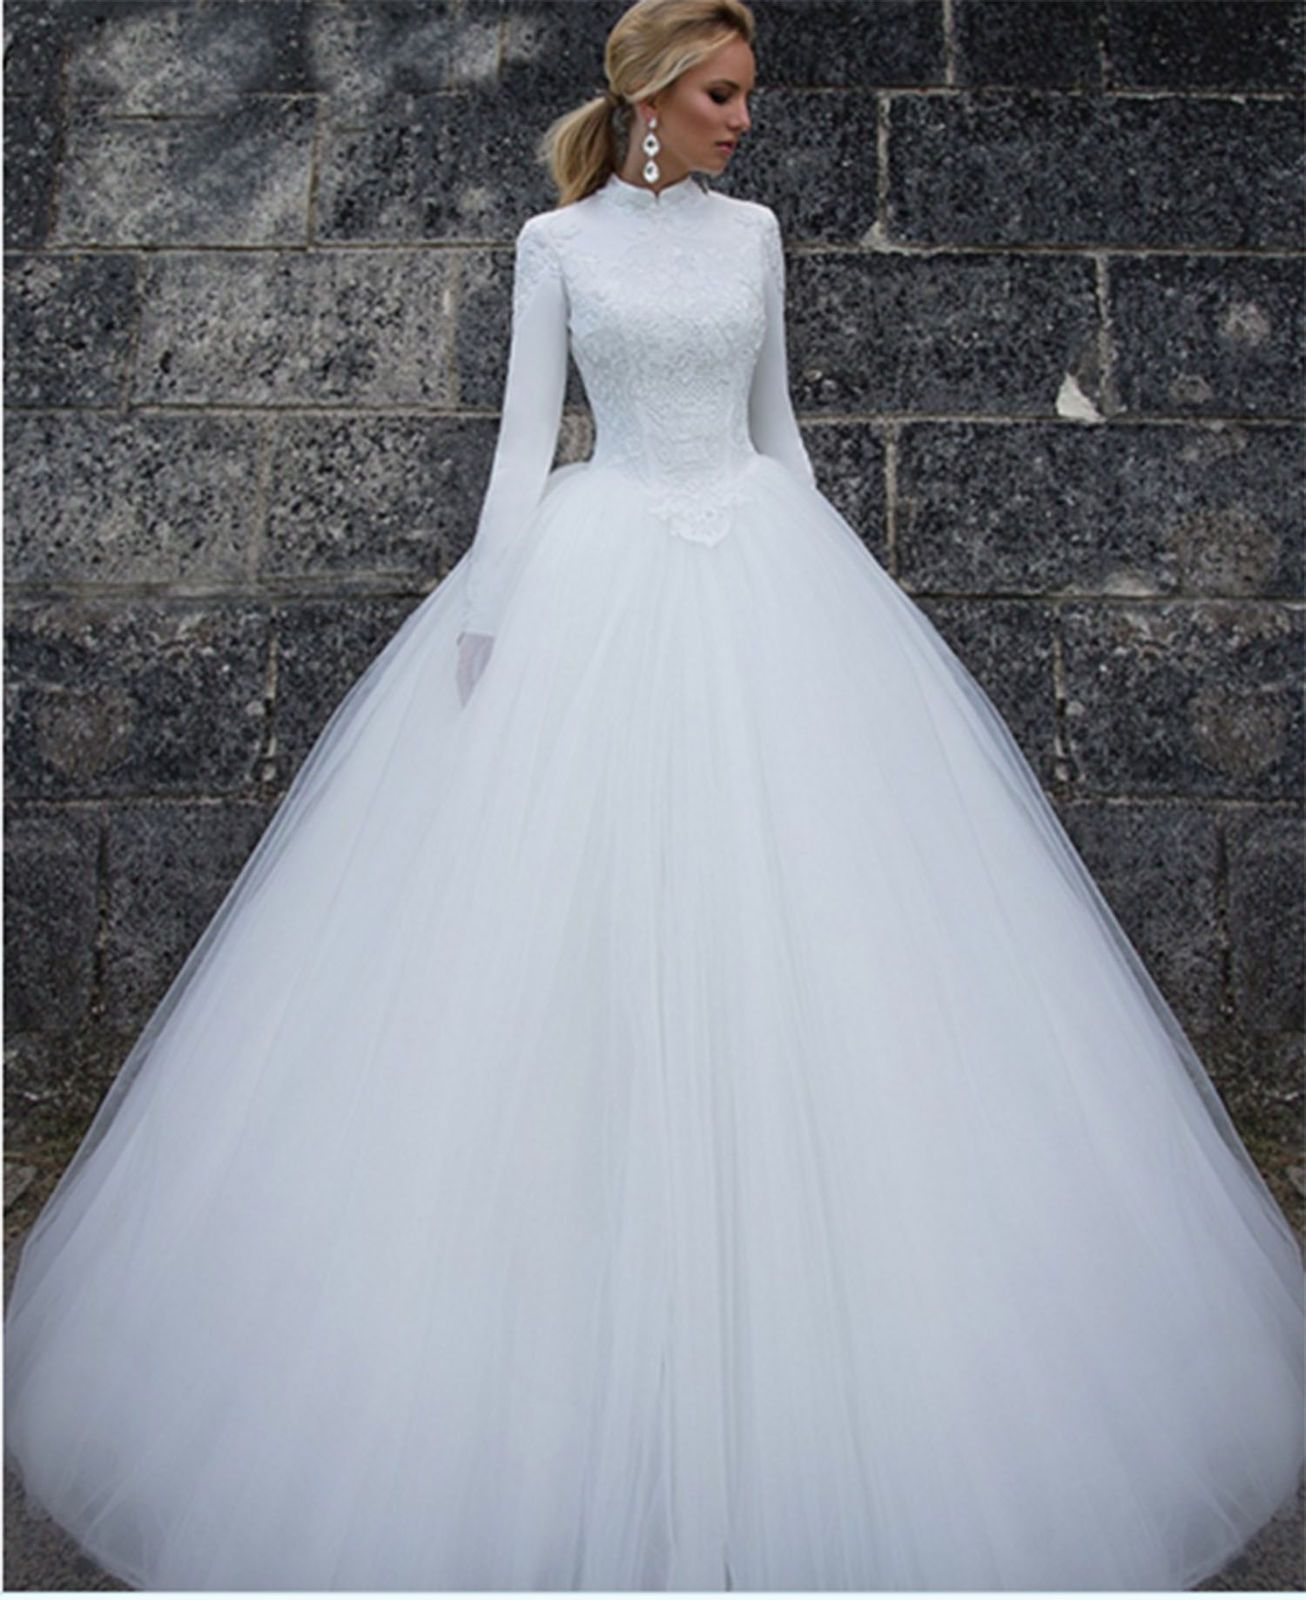 Awesome Amazing White Ivory Long Sleeve Bridal Gowns Muslim Dubai ...